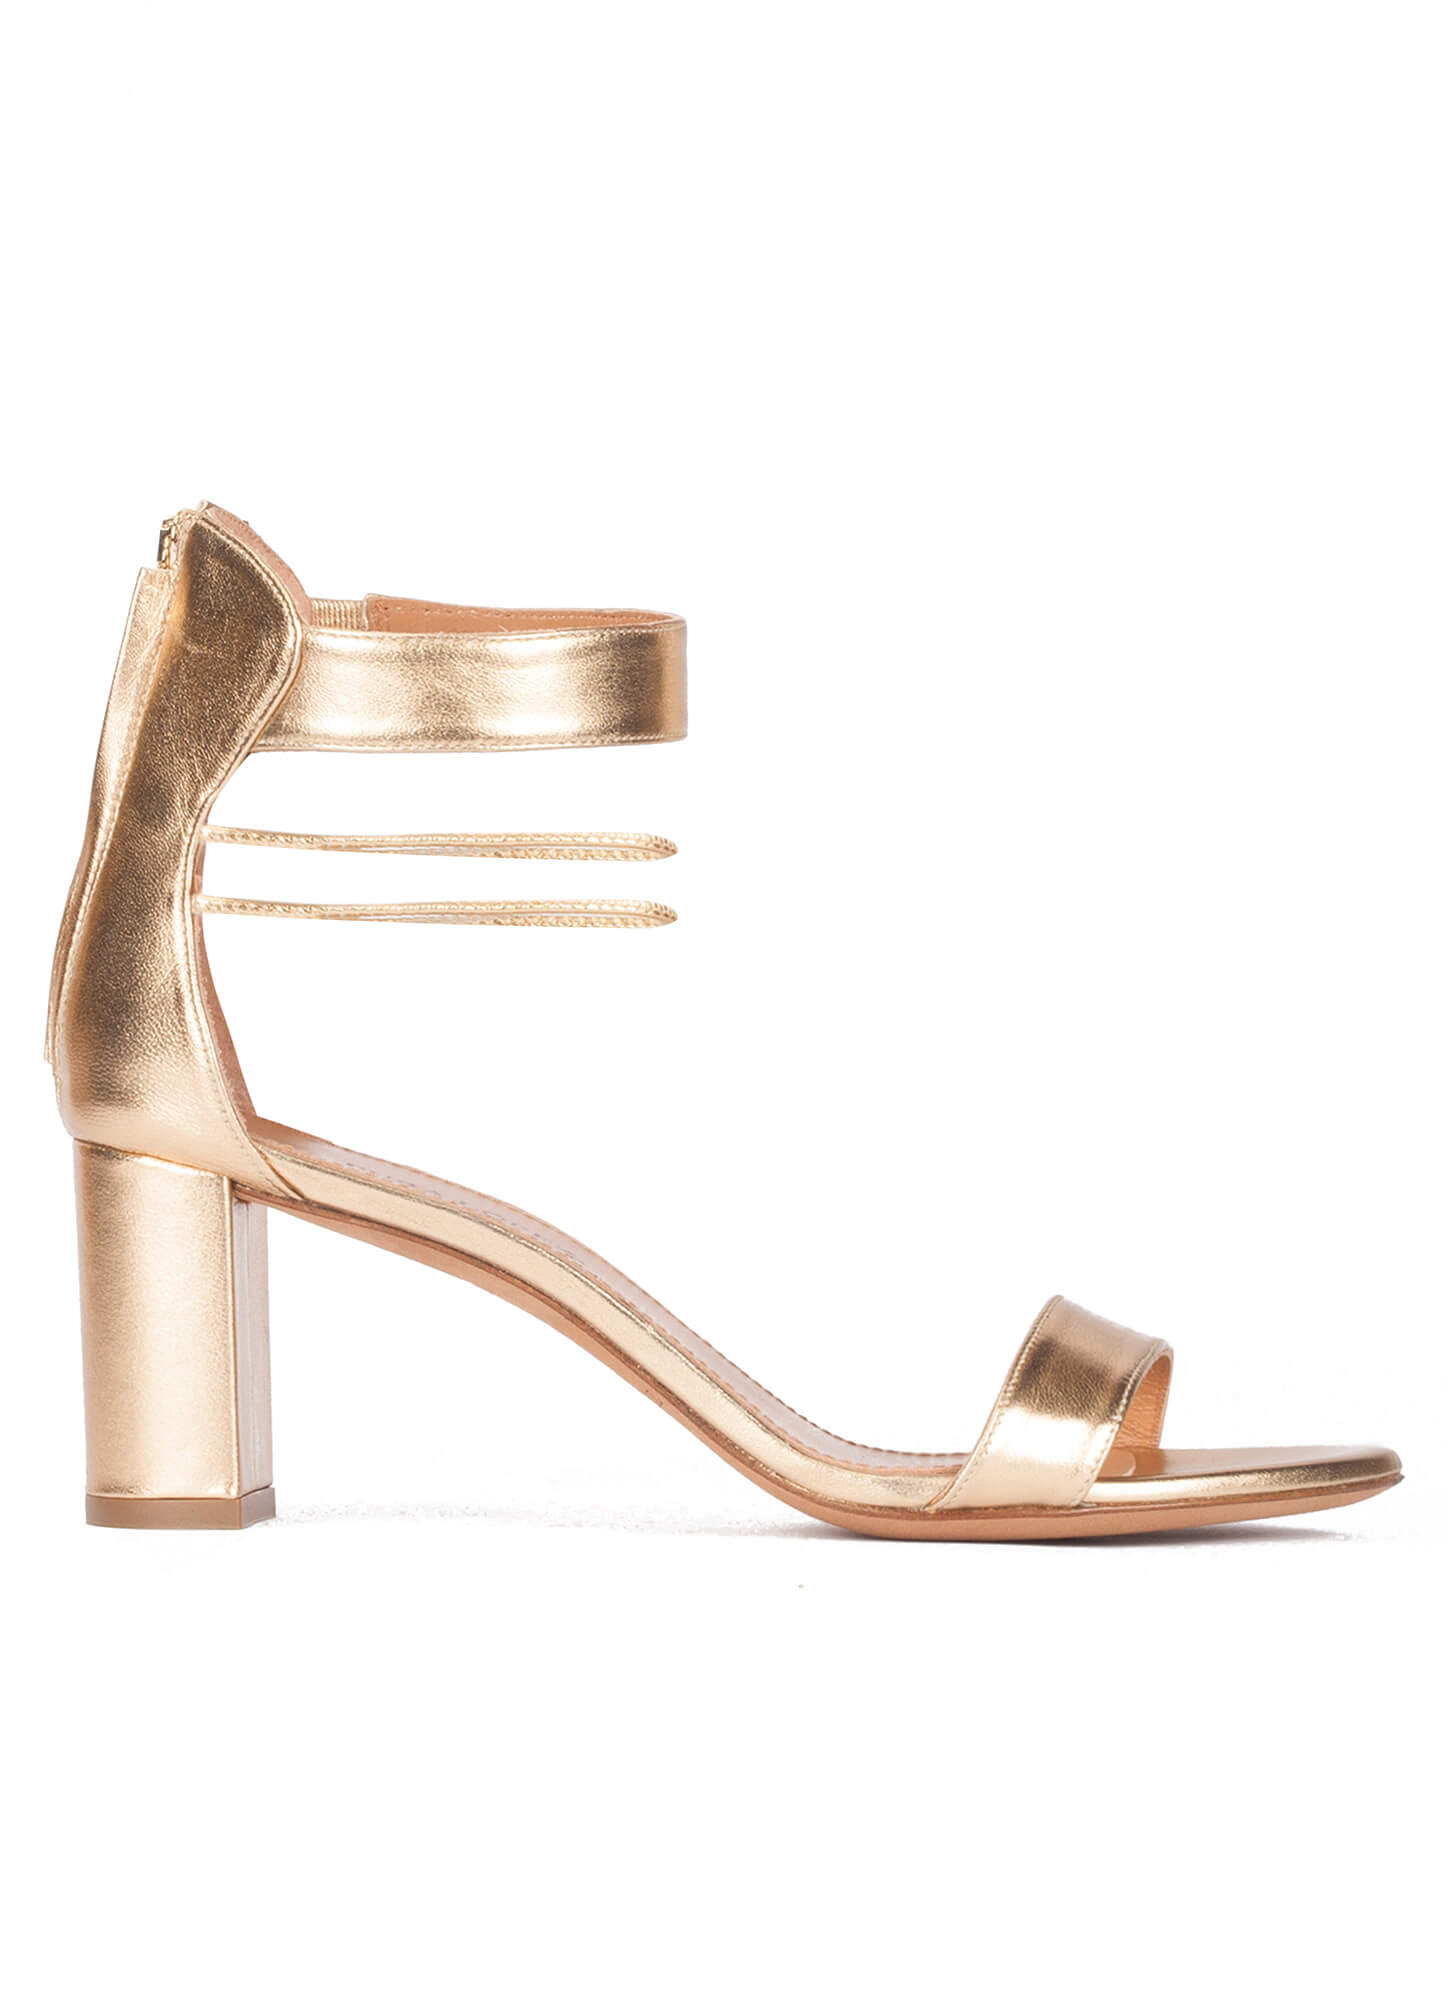 46e2d605690c Onore Pura López. Gold leather mid block heel sandals with ankle strap ...